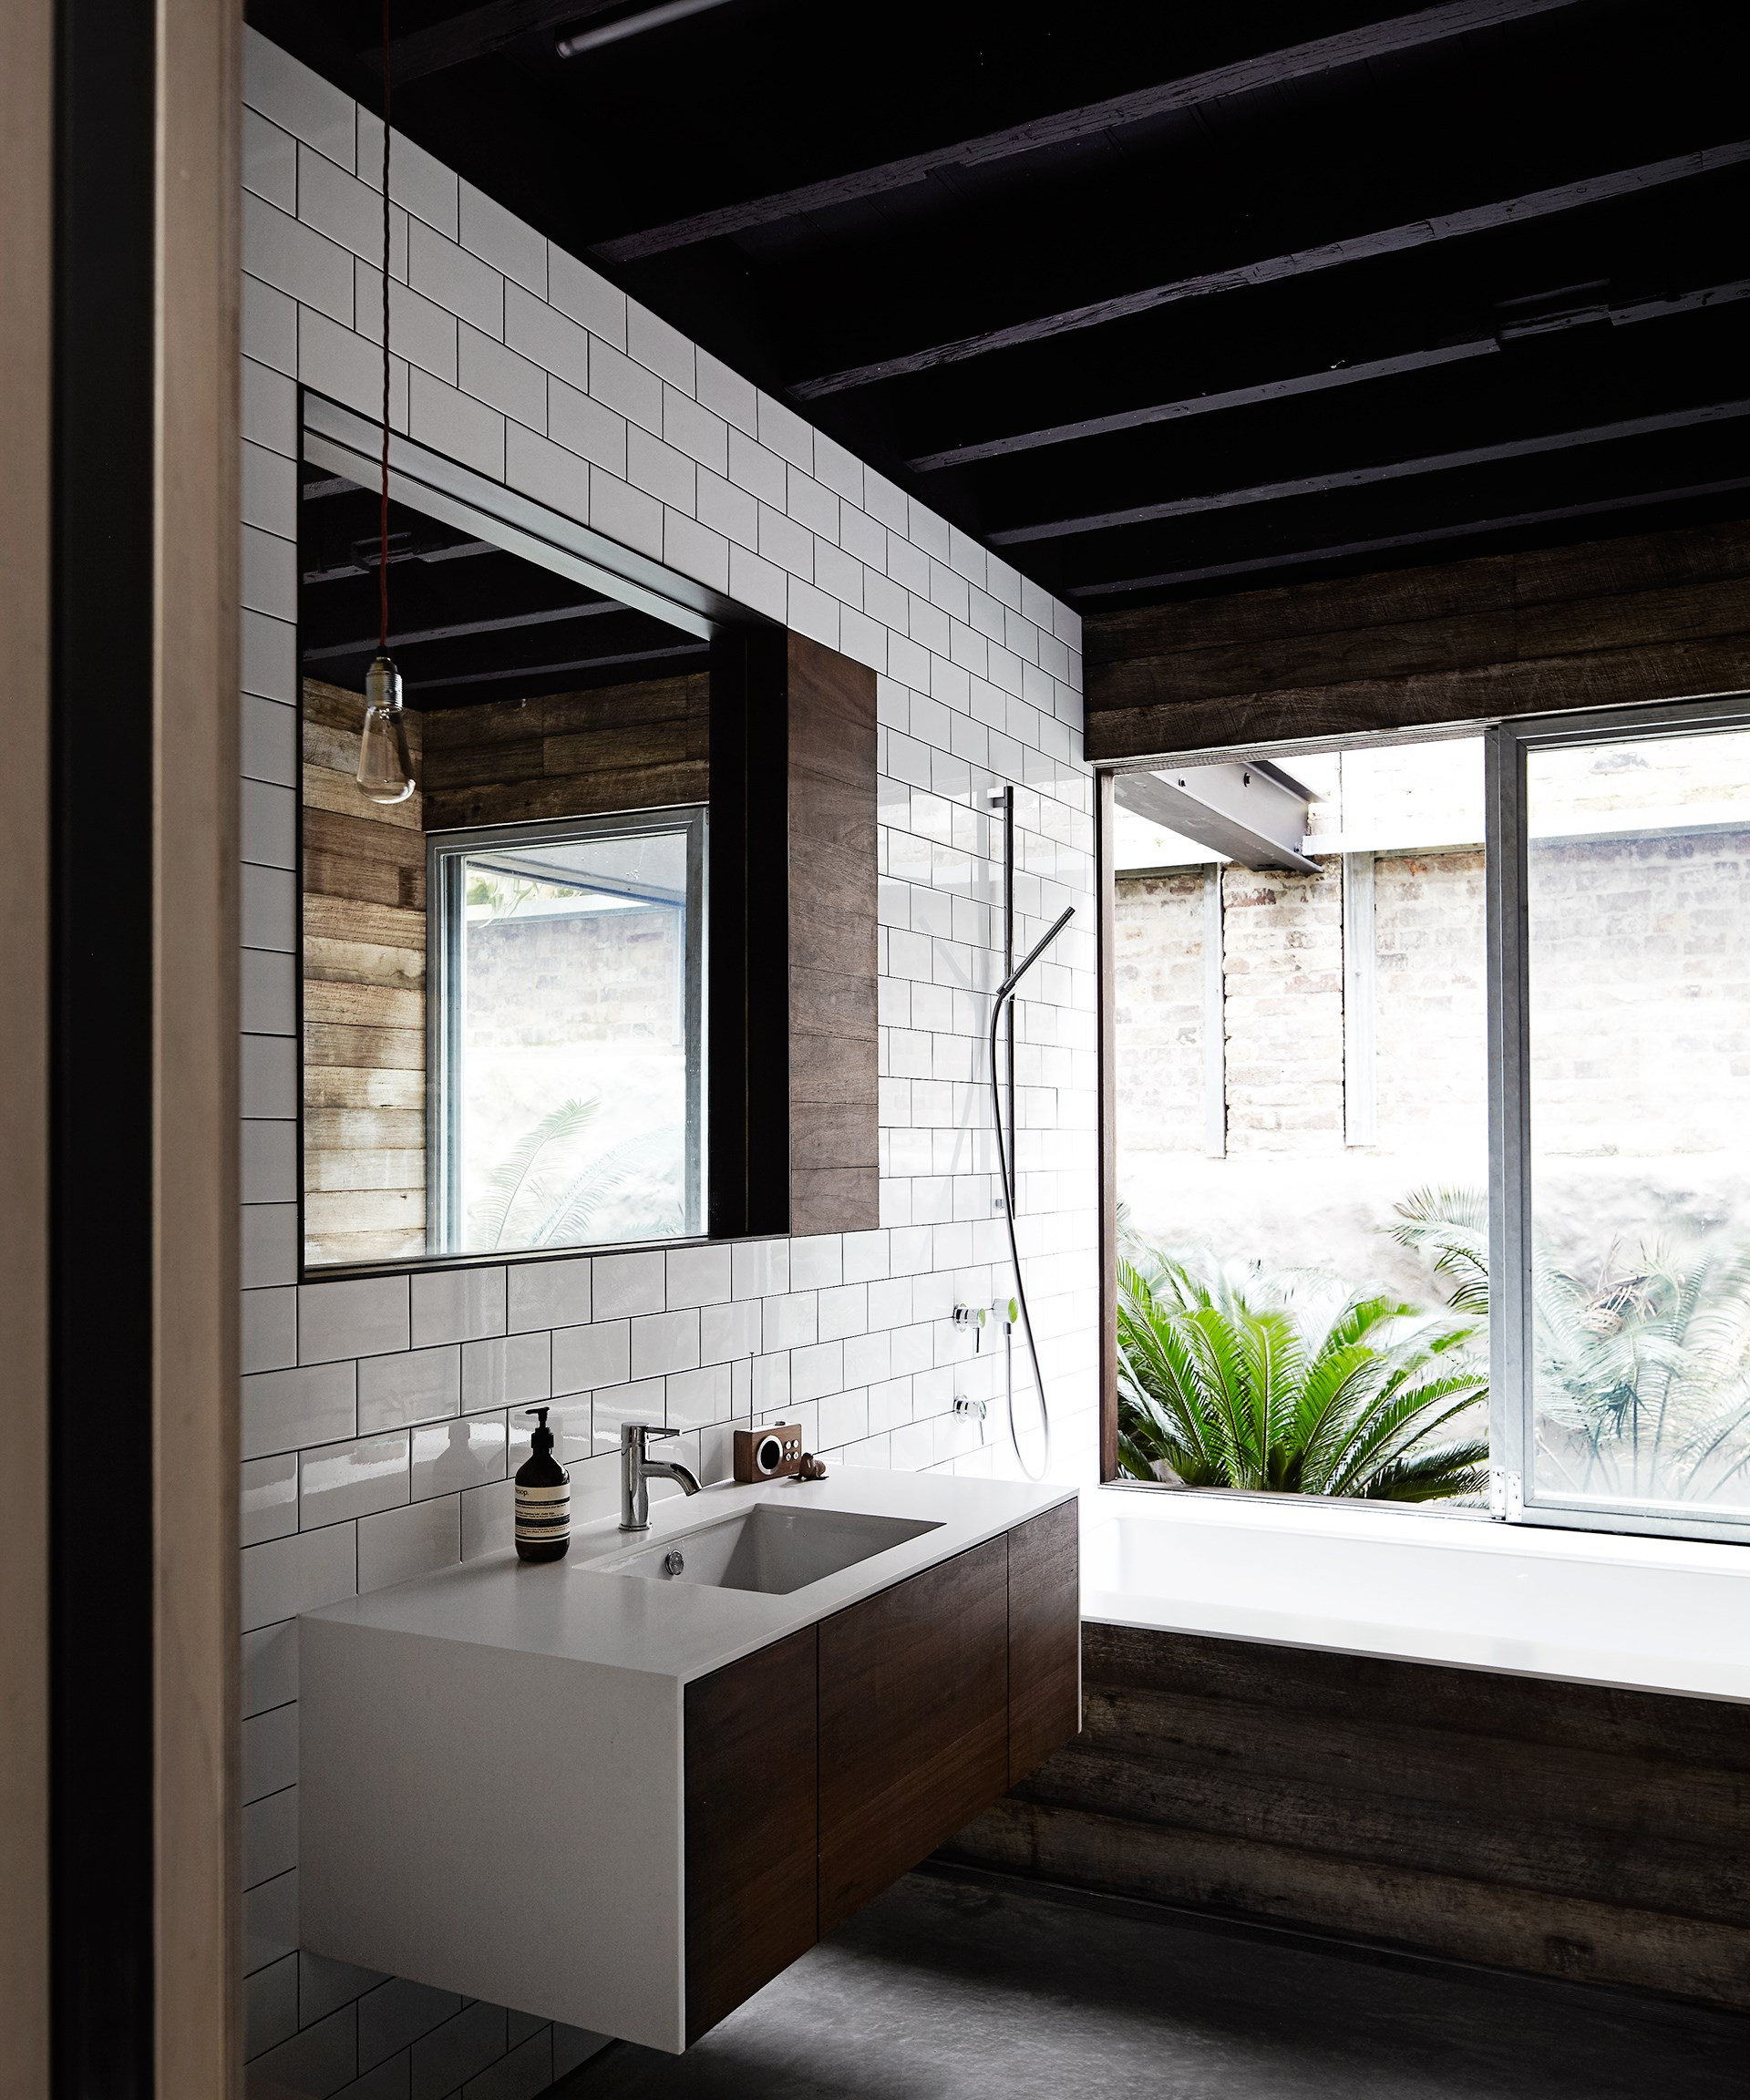 A mix of materials including subway tiles, reclaimed wood and glass, ties in with the overall design concept of this [sleek warehouse conversion](http://www.homestolove.com.au/inside-comedian-merrick-watts-happy-home-3465). Photo: Sharyn Cairns